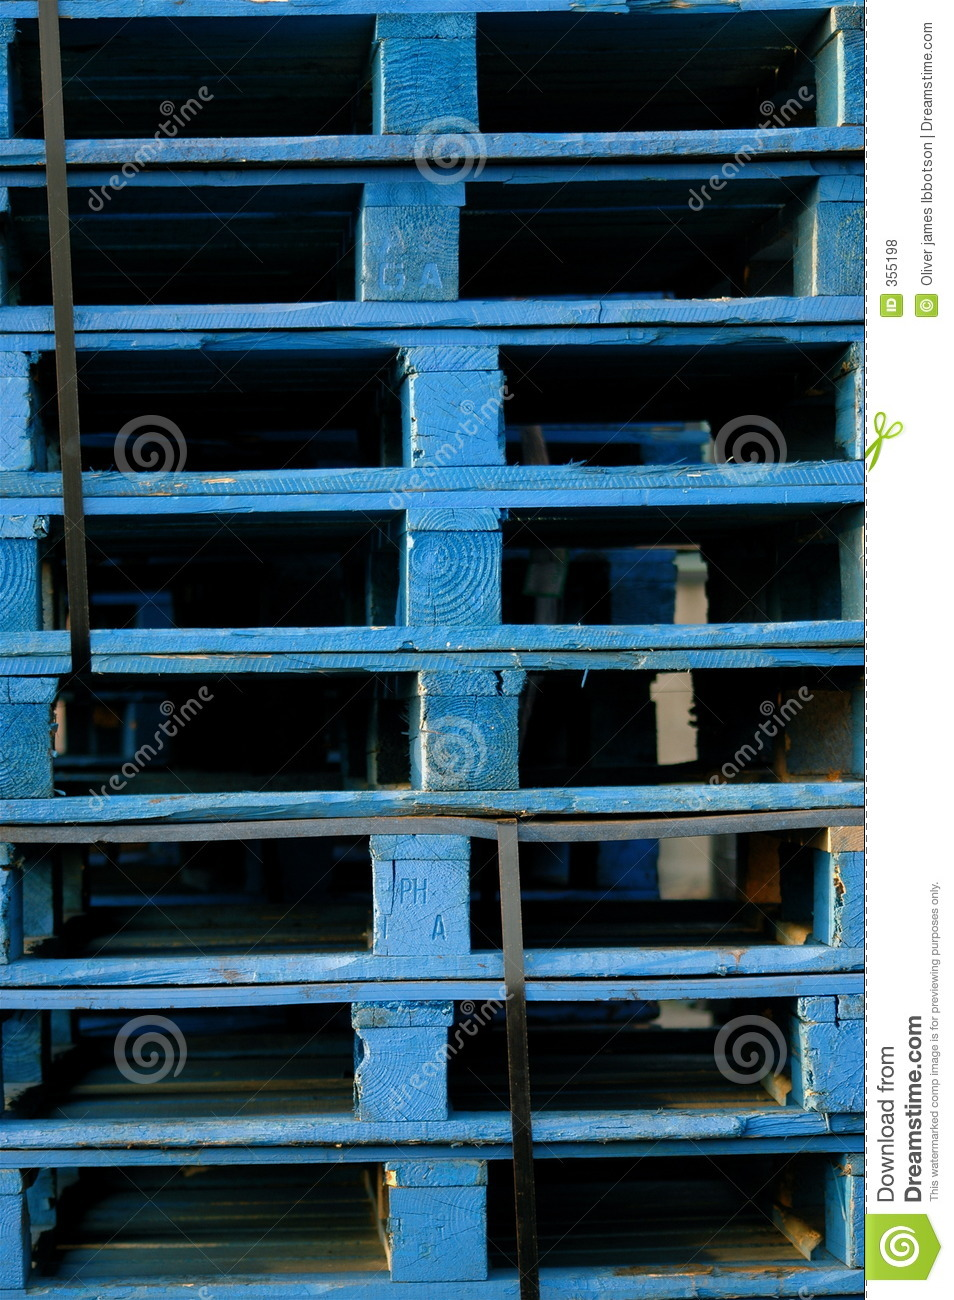 blue pallets royalty free stock photos image 355198